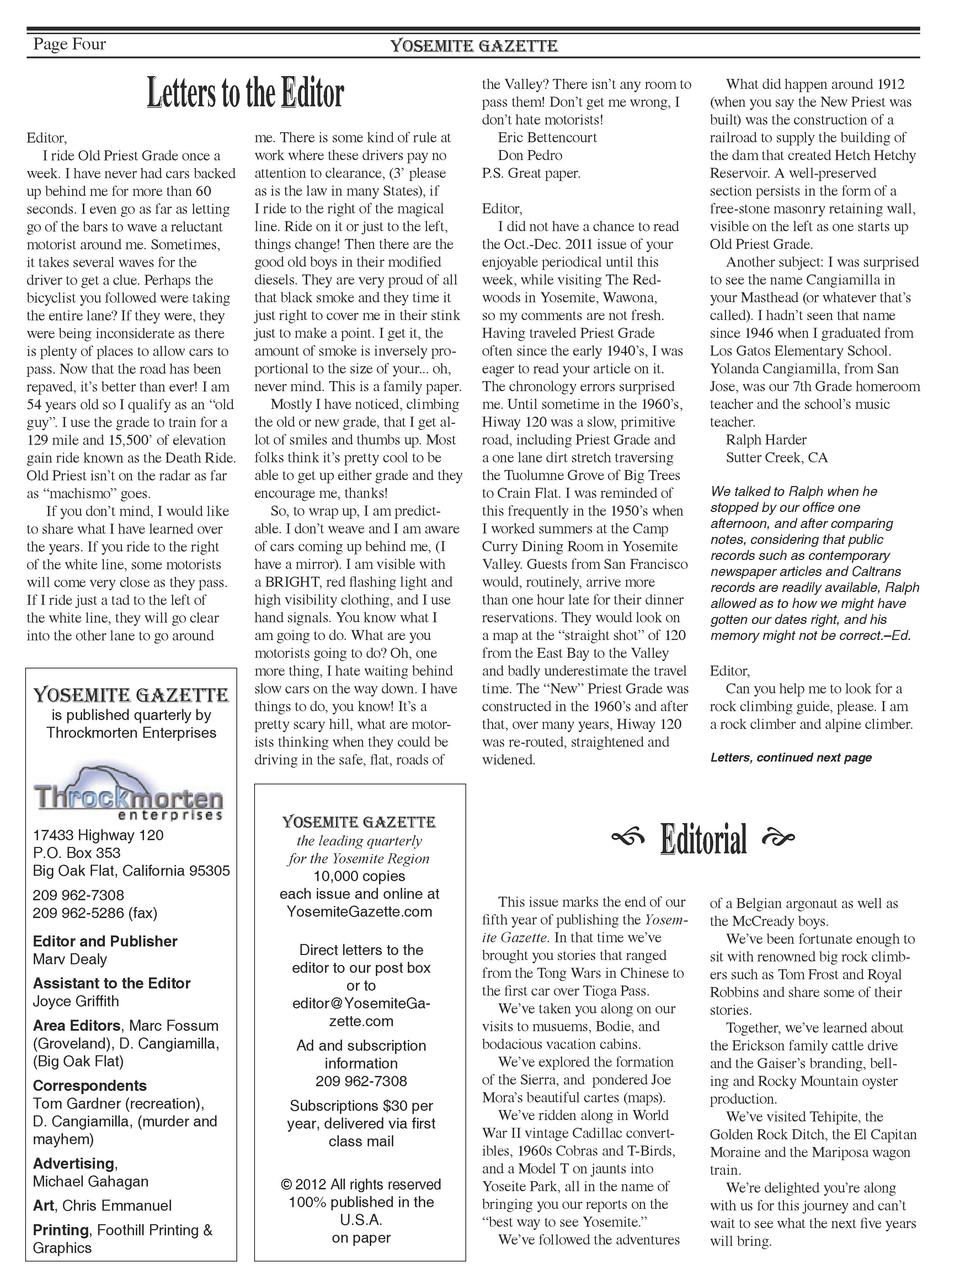 Page Four  Yosemite Gazette  Letters to the Editor Editor, I ride Old Priest Grade once a week. I have never had cars back...